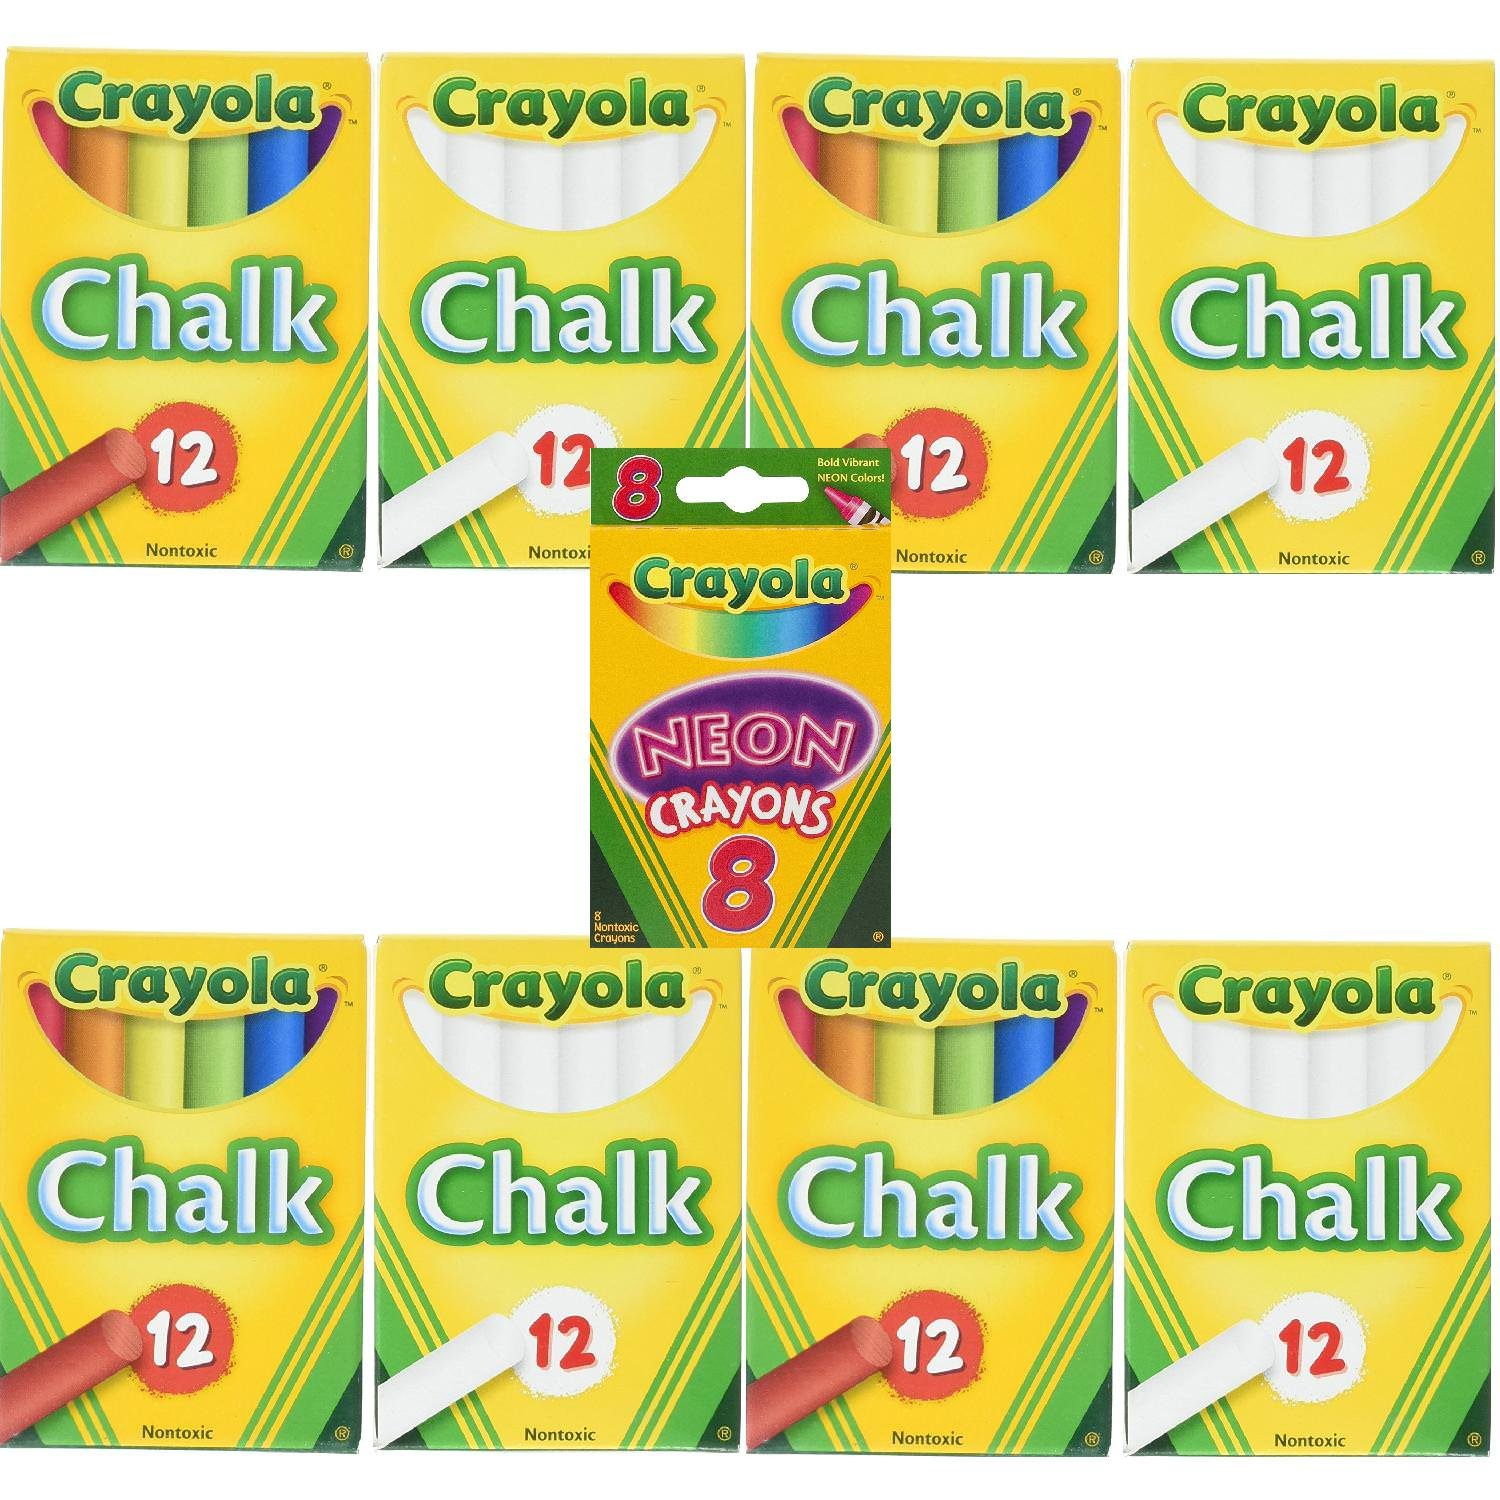 4 Pack Crayola Non-Toxic White Chalk and 4 Pack Colored Chalk Bundle with Box of Neon Crayons